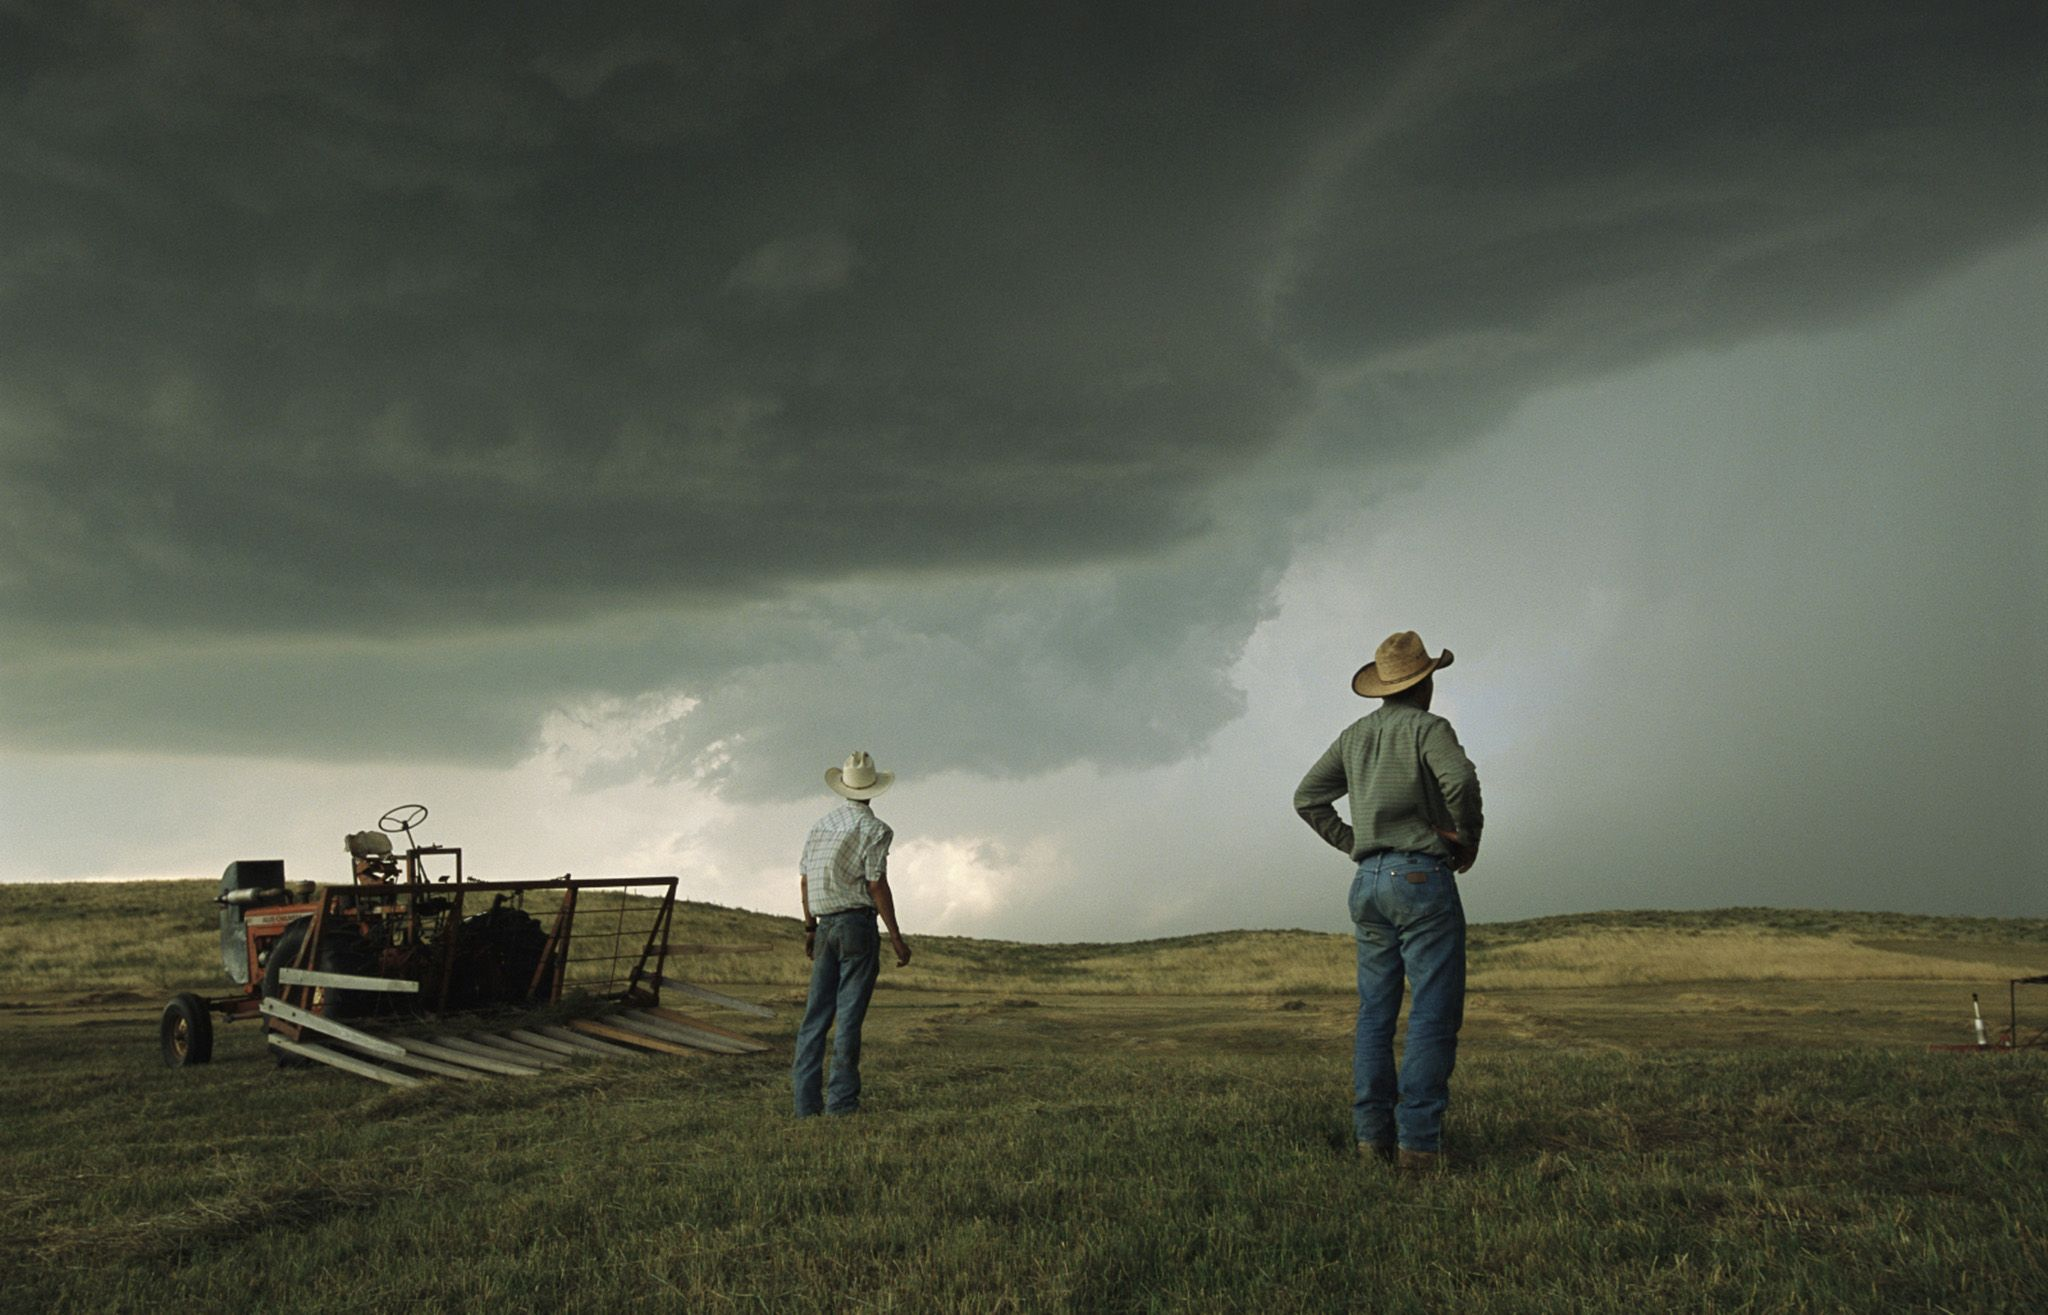 Farmers watch growing storm clouds in the Sand Hills of Ogallala, Nebraska.